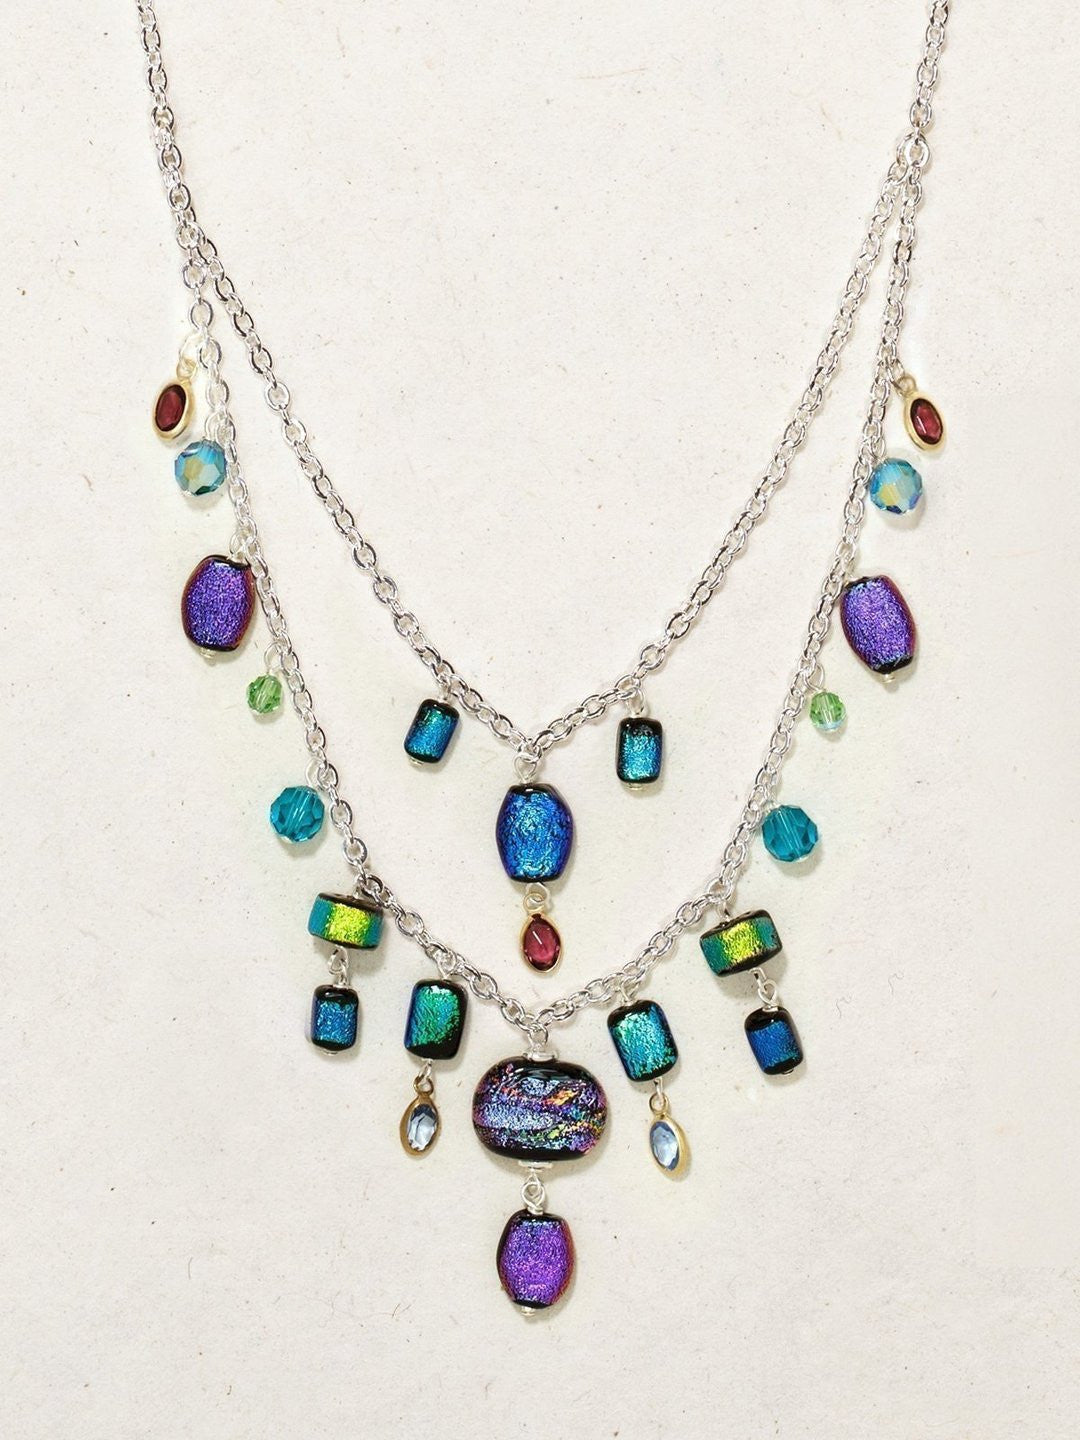 Holly Yashi Cabana Necklace at Boheme Asheville